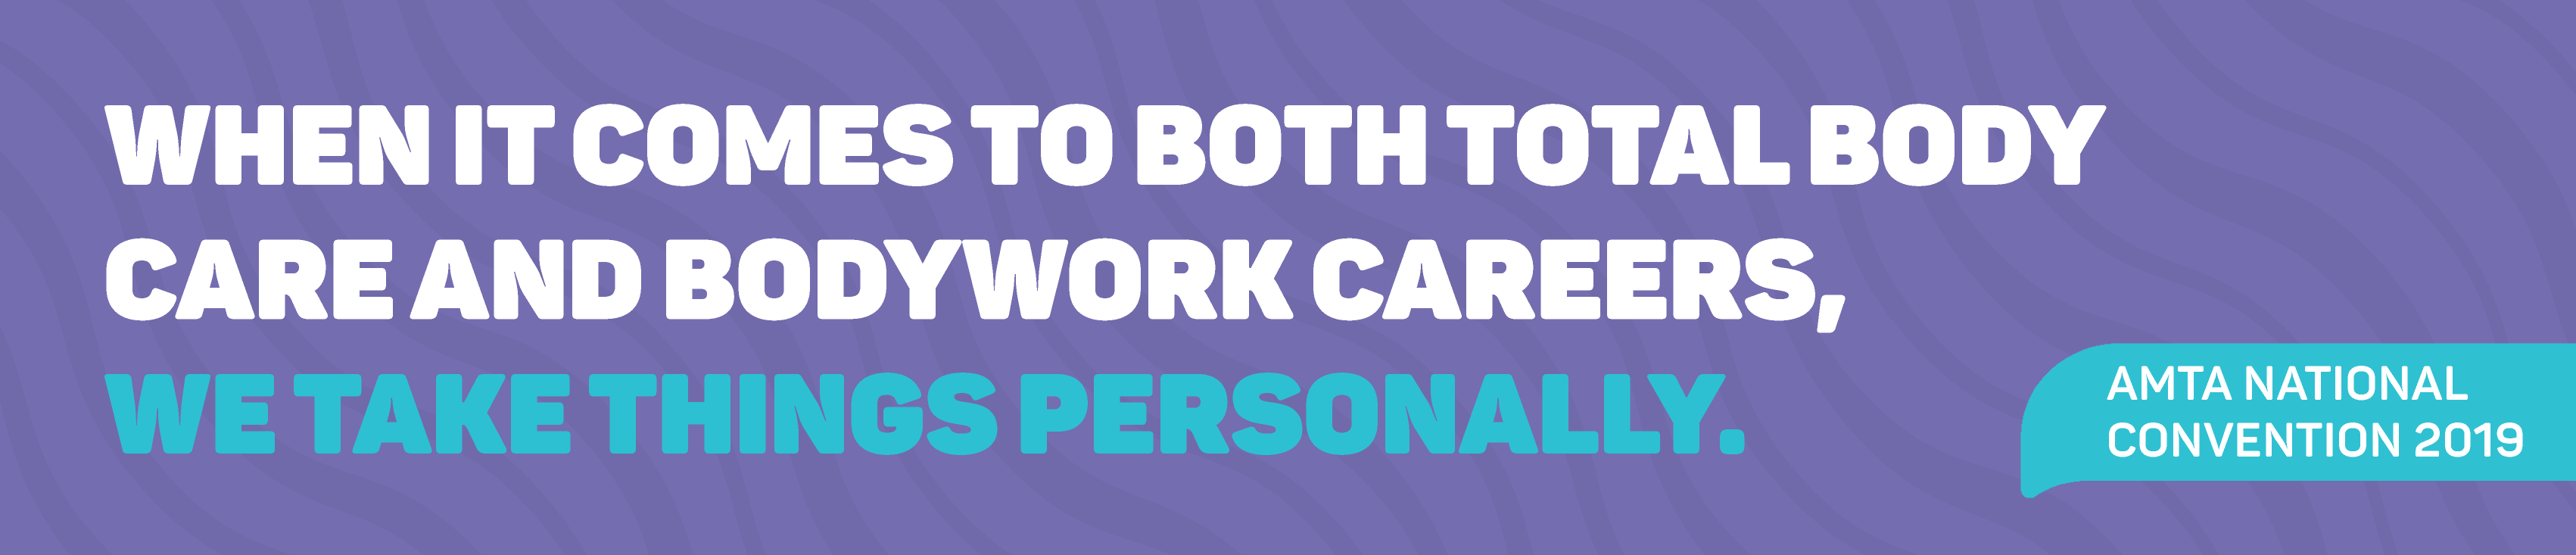 When it comes to both total body care and bodywork careers, we take things personally.